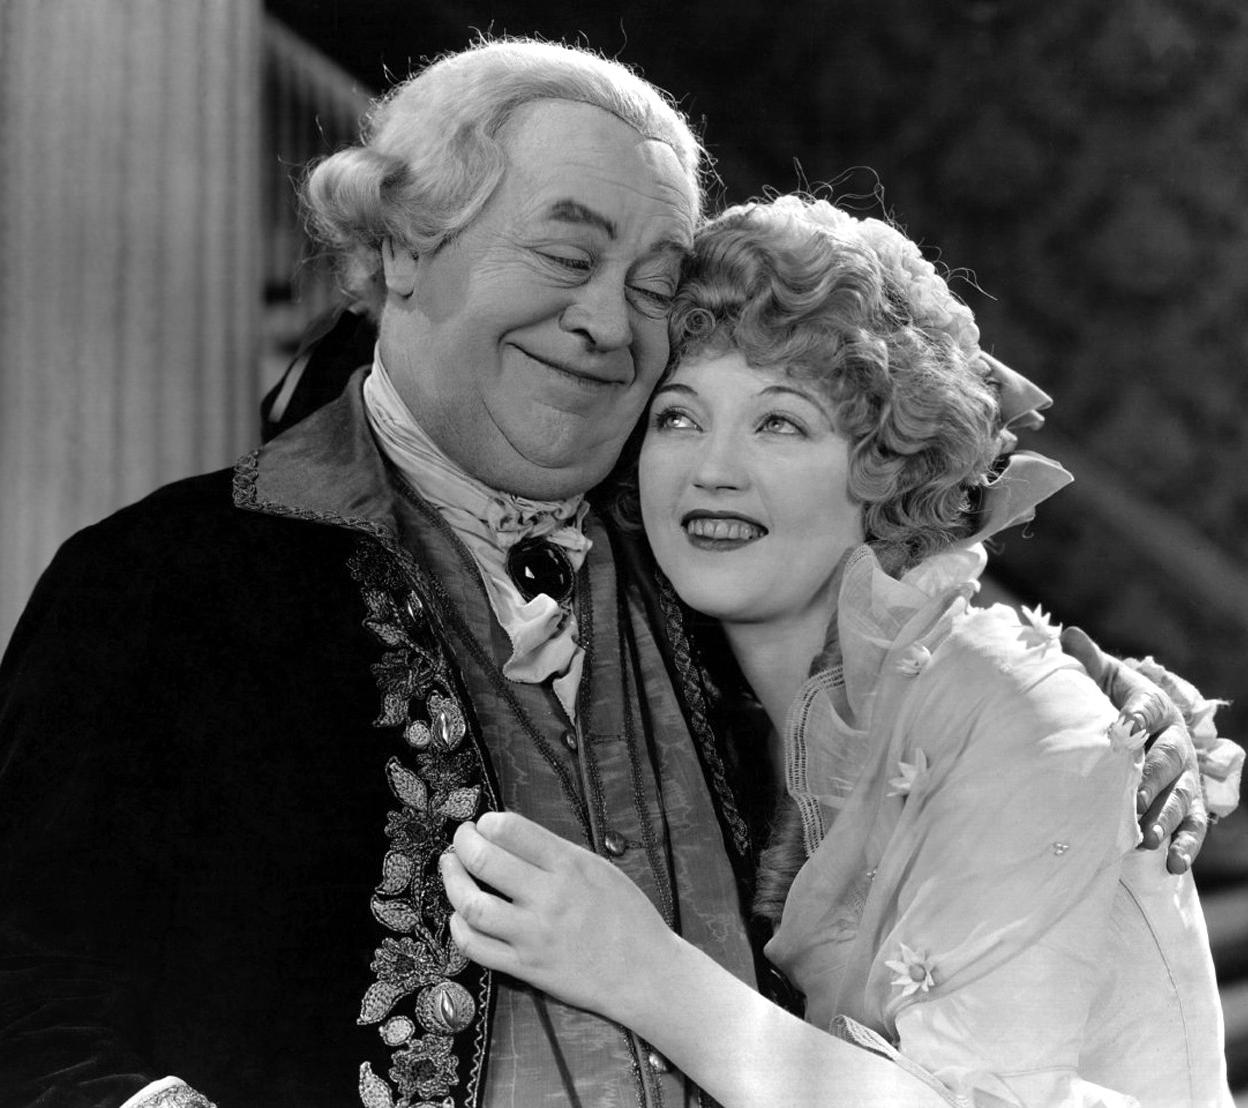 Maclyn 4 - 1924: American actress Marion Davies (1897 - 1961) shares an affectionate moment in a scene from 'Janice Meredith', adapted from the novel by Paul Leicester Ford and directed by E Mason Hopper for Cosmopolitan/MGM.